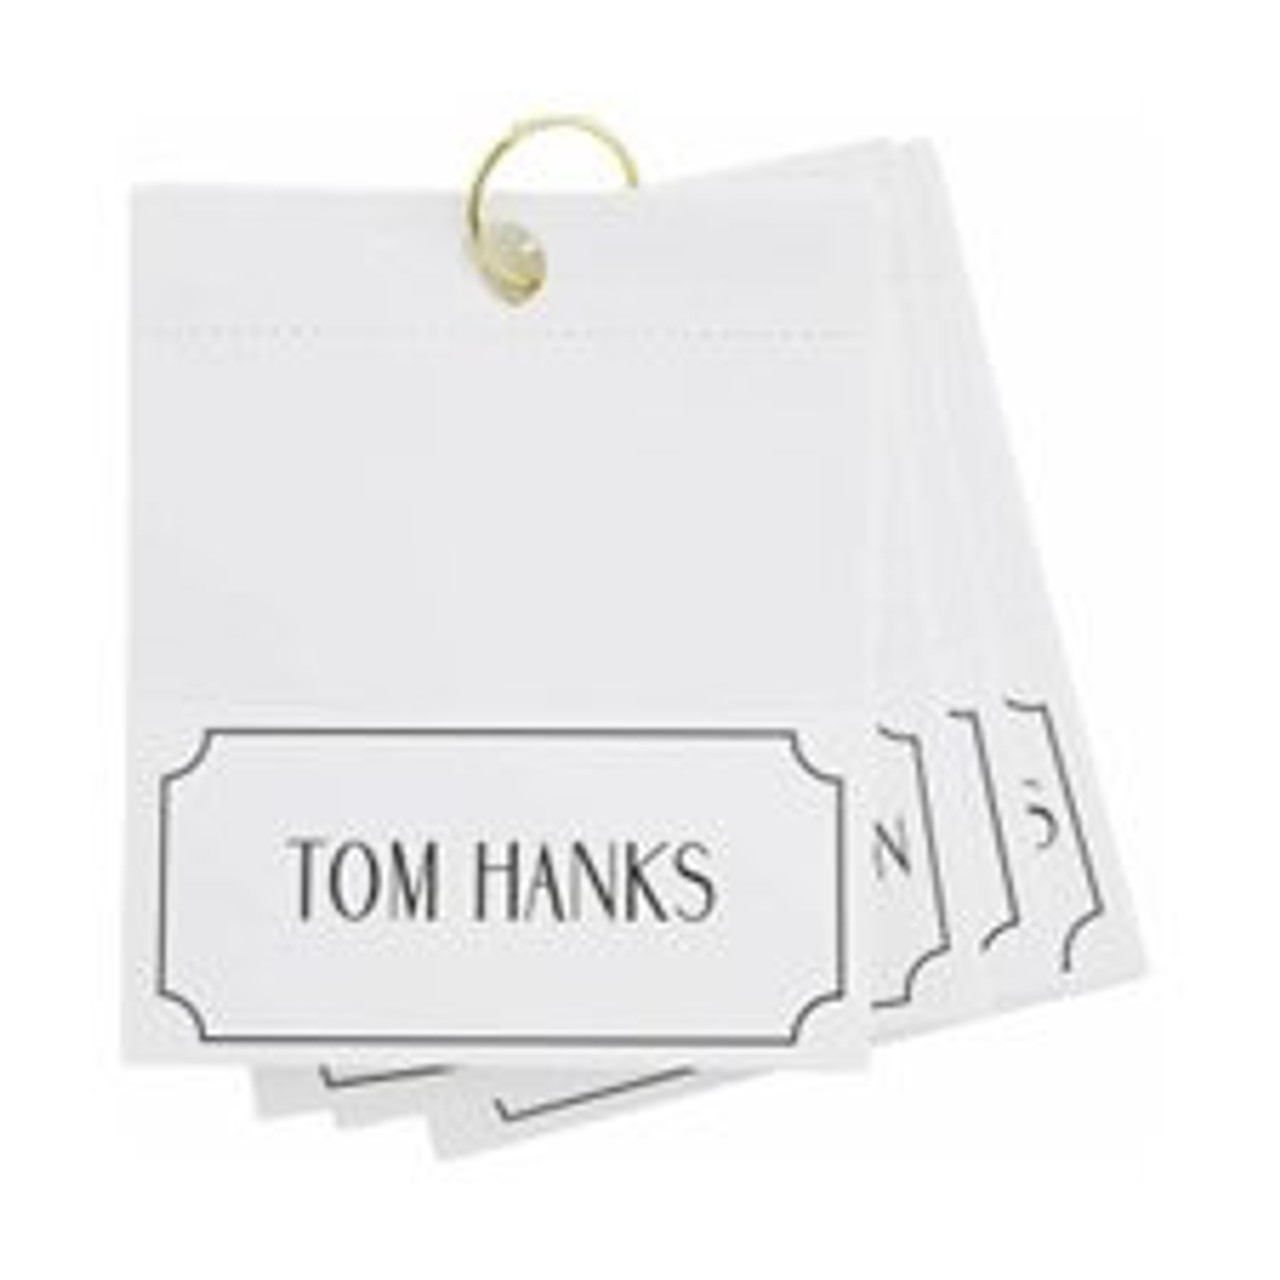 """Bring some laughs and Hollywood glamour to your next dinner party with a set of male actor place cards. Folded cards measure 2 3/8"""" H x 4 3/4"""" W.  This set of 24 cards features some of the most recognized names from the big screen including Tom Hanks, Mark Wahlberg, Arnold Schwarzenegger, Matt Damon, Ben Affleck, Al Pacino, Robert De Niro, The Rock (Dwayne Johnson), Adam Sandler, Morgan Freeman, Denzel Washington, Jeff Bridges, Clint Eastwood, Jack Nicholson, Sean Penn, Nicolas Cage, Sylvester Stallone, Ben Stiller, Anthony Hopkins, Owen Wilson, Leonardo DiCaprio, Marlon Brando, Jim Carey, Eddie Murphy"""